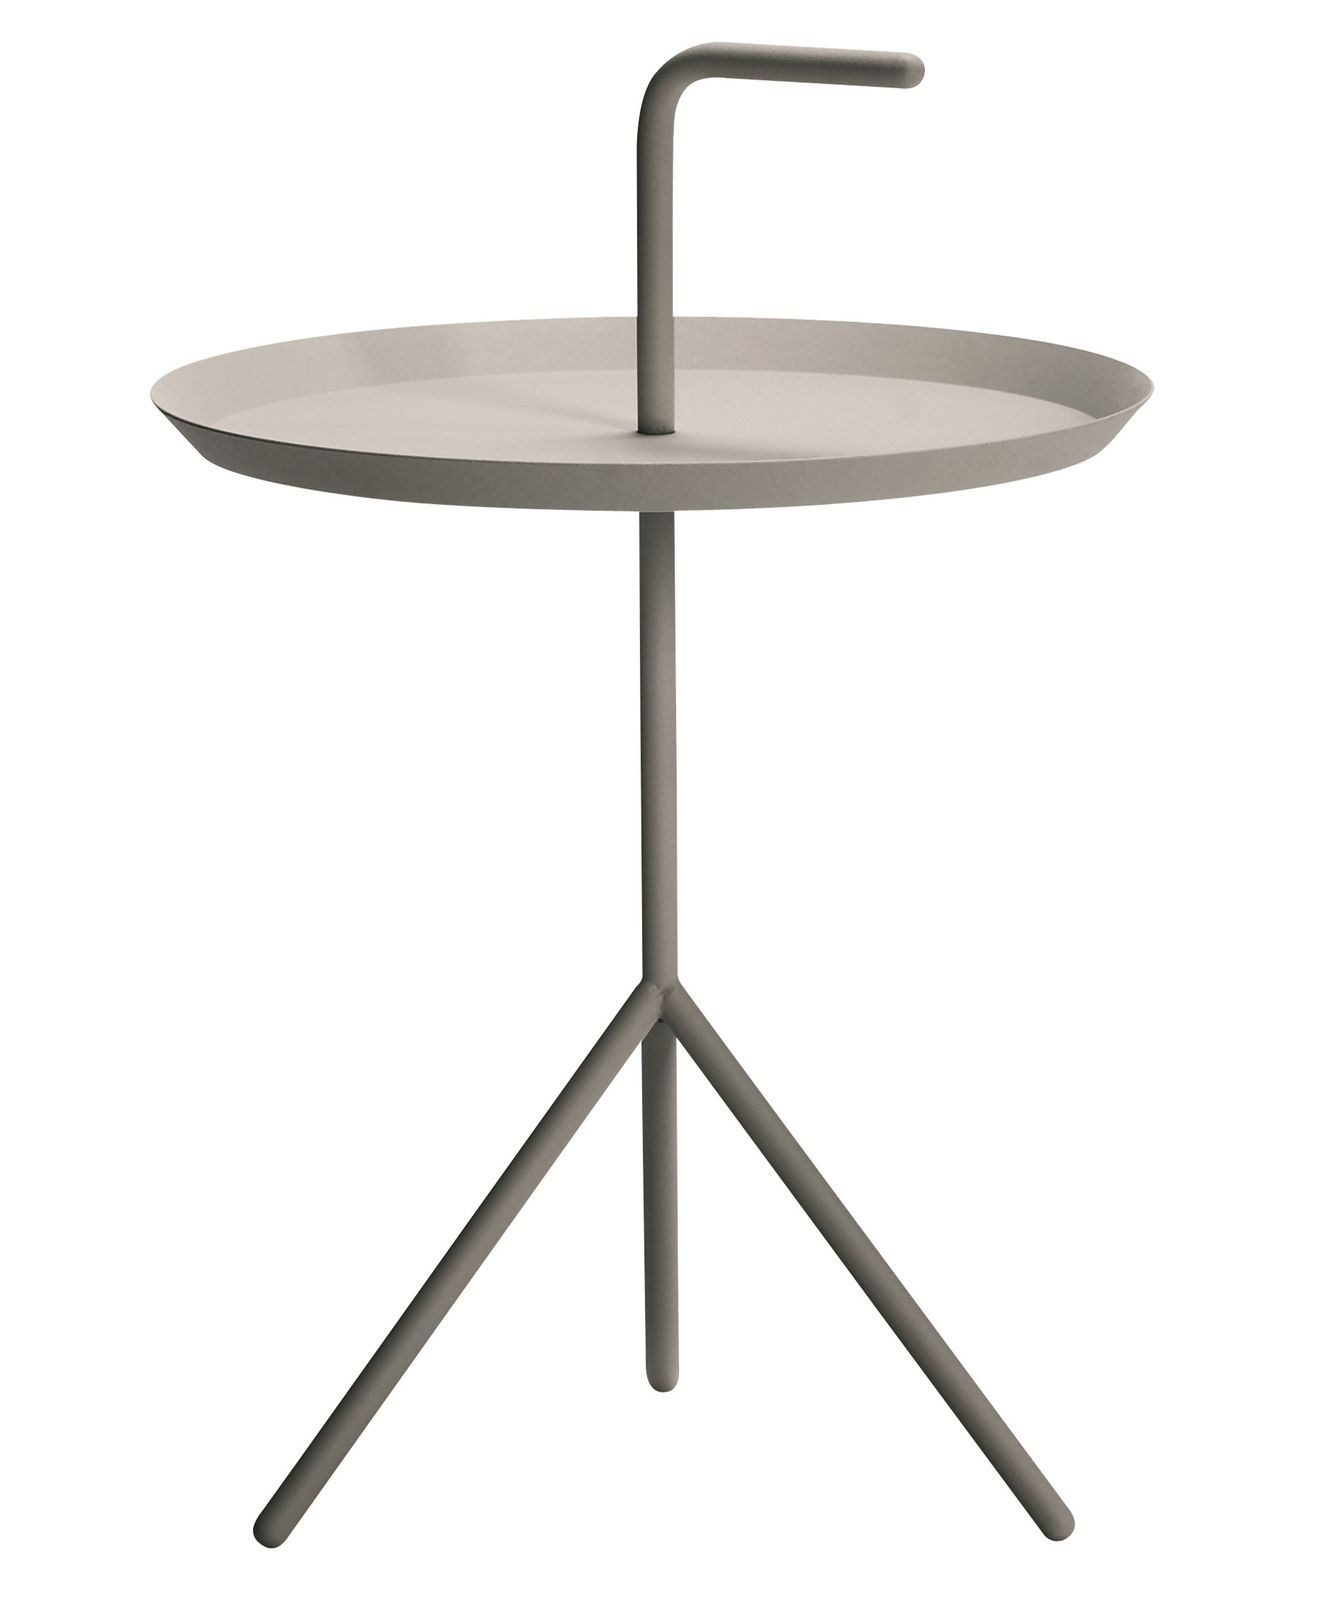 DLM Sidetable By Hay Denmark | Metal Side Table Easy To Carry From One  Place To